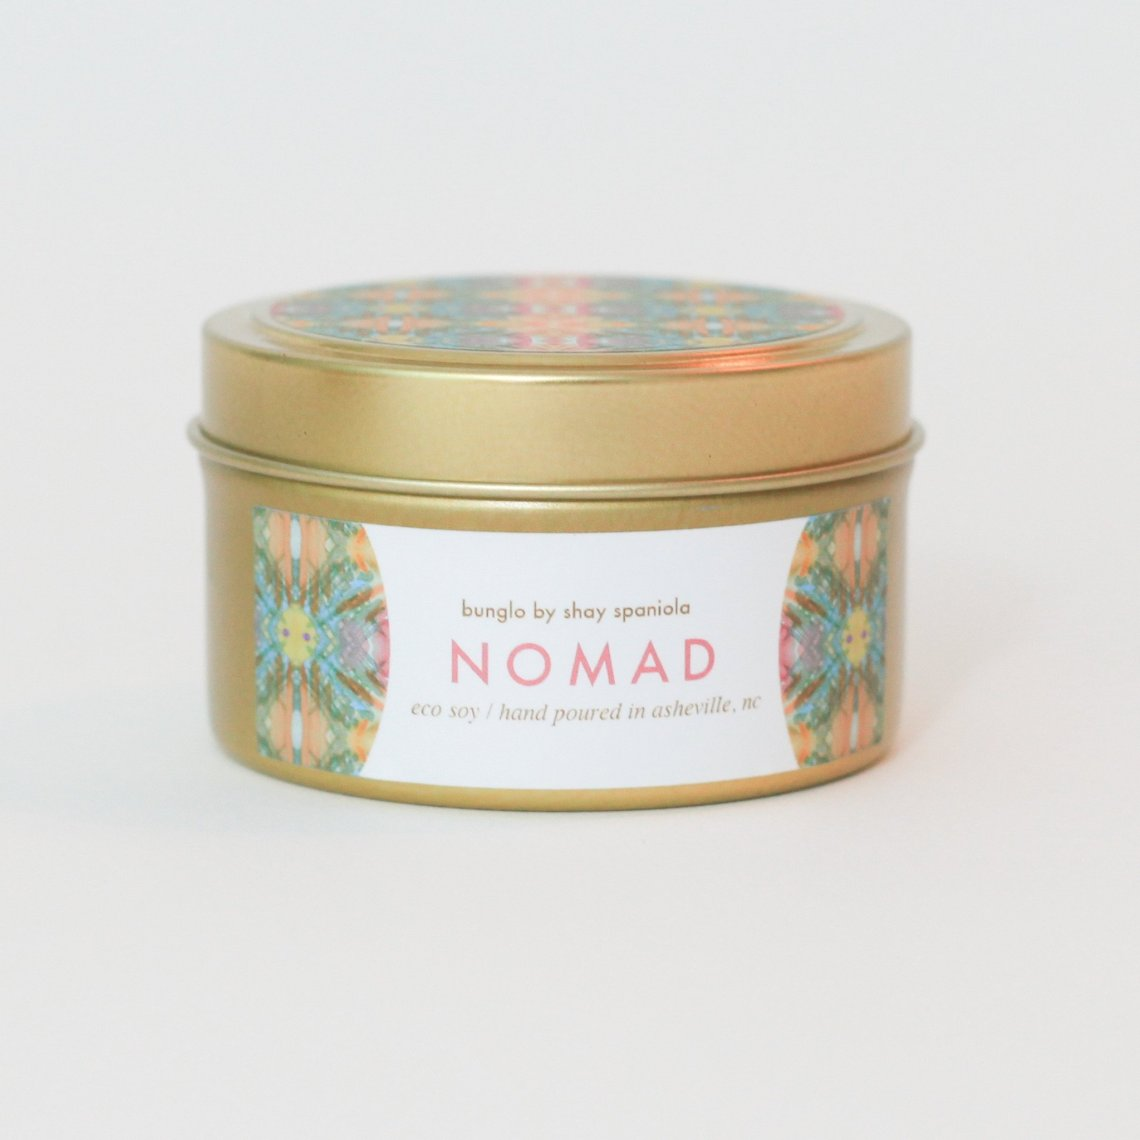 Nomad Candle by Bunglo